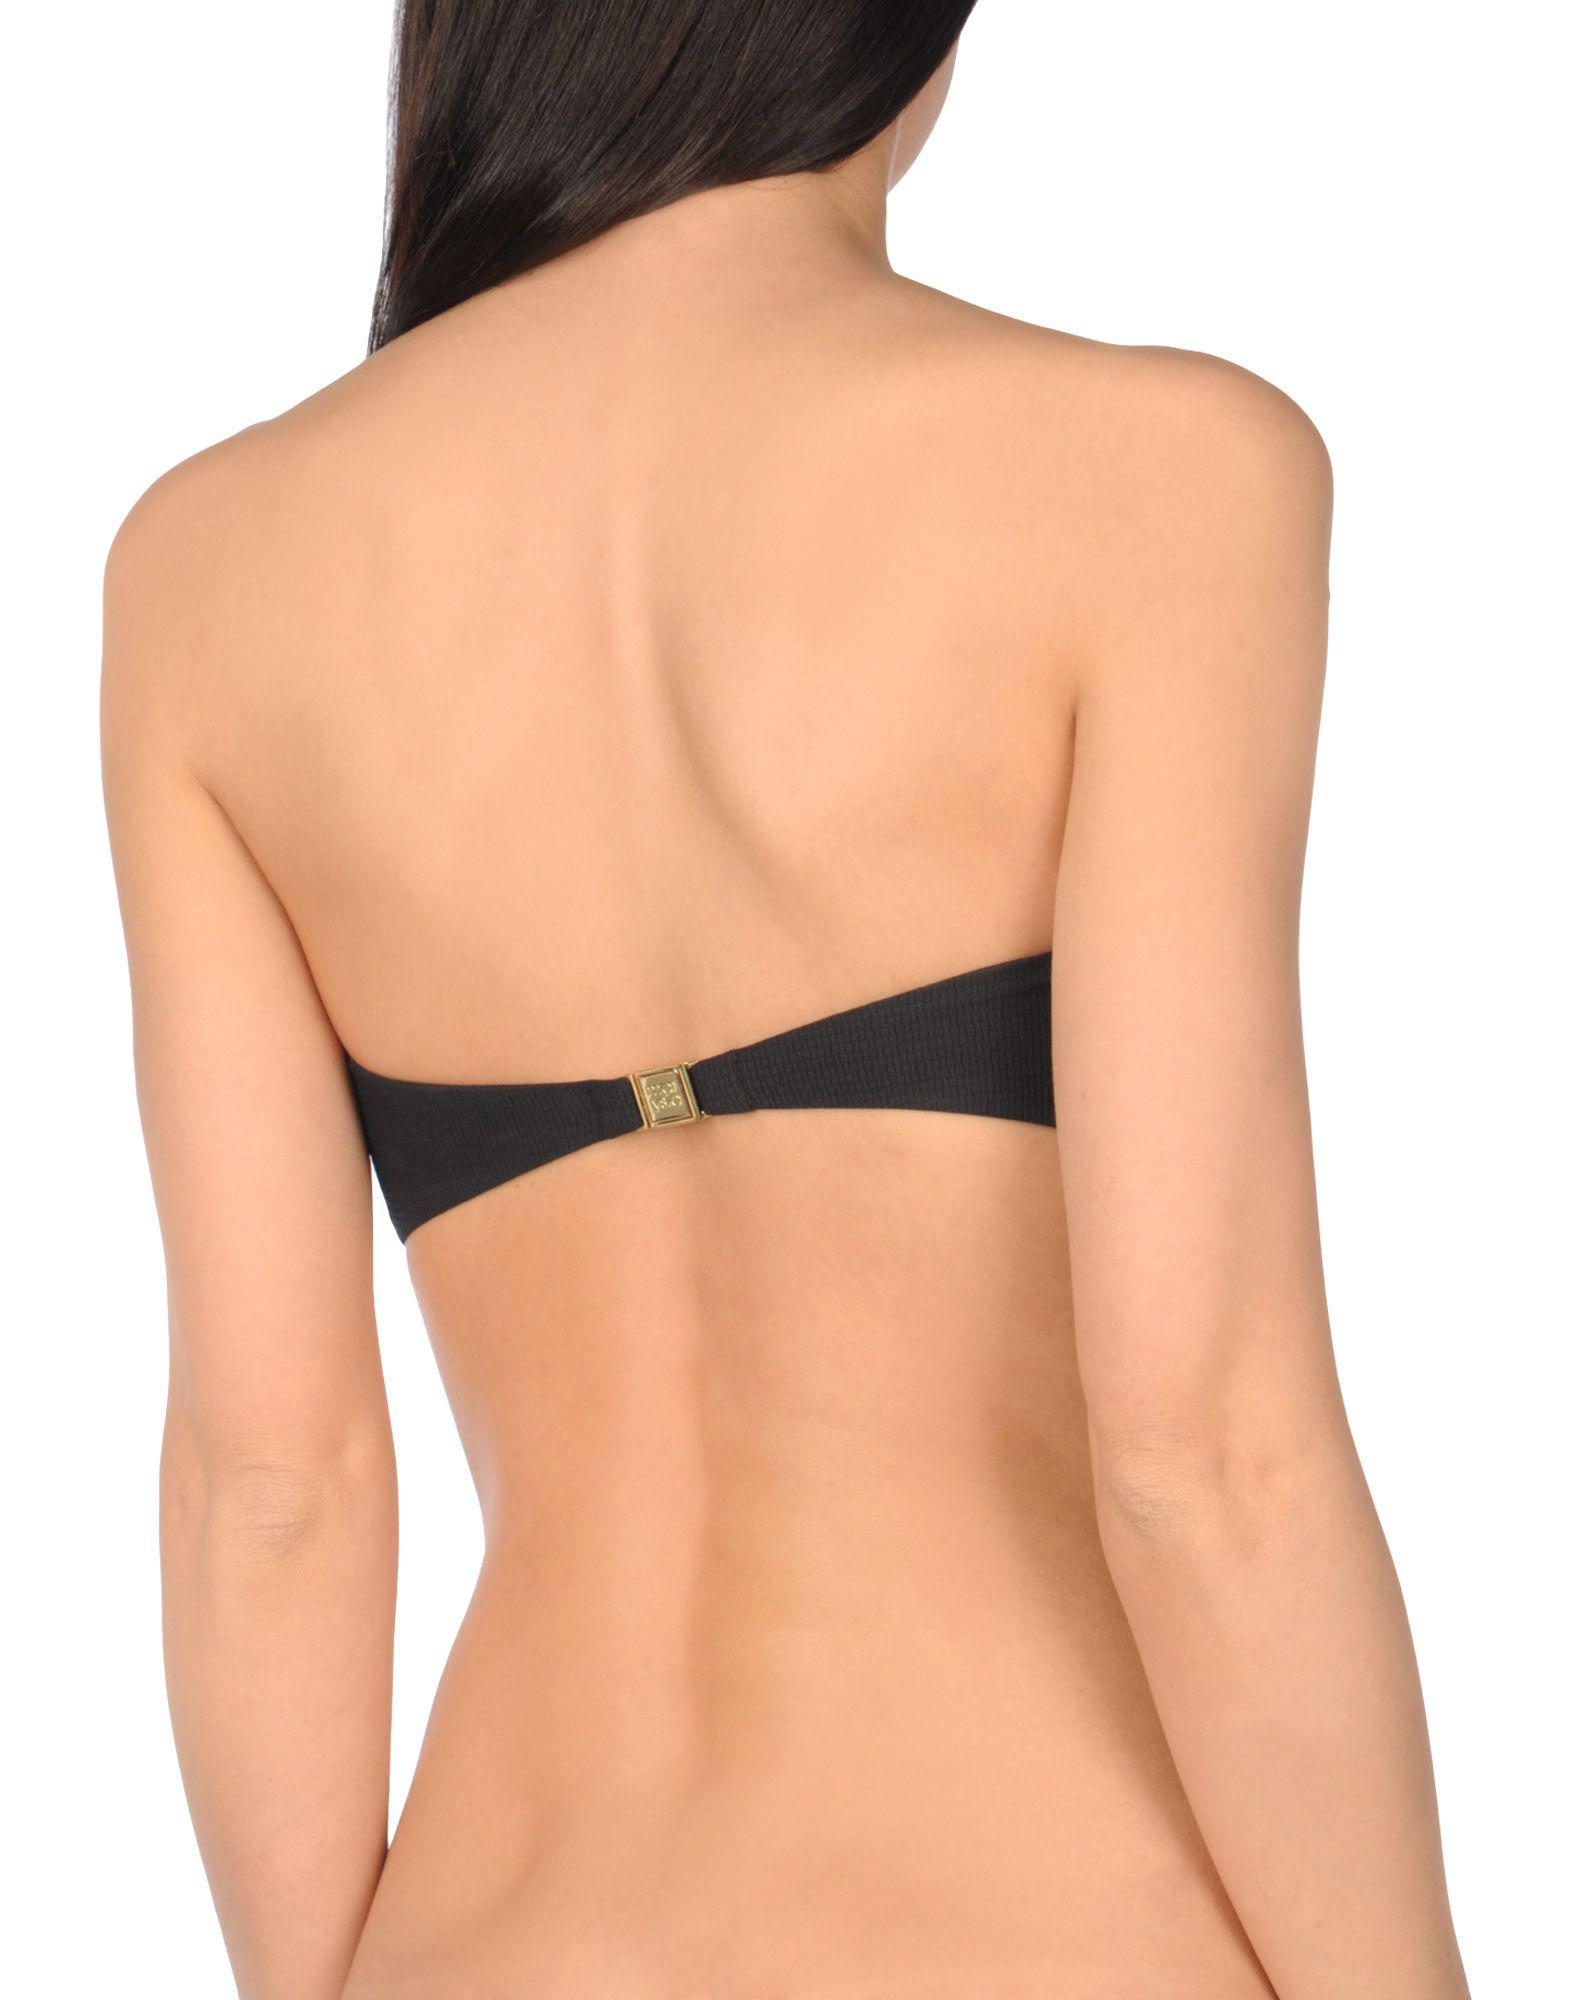 98ab2c19218 Marysia Swim Bikini Top in Black - Lyst